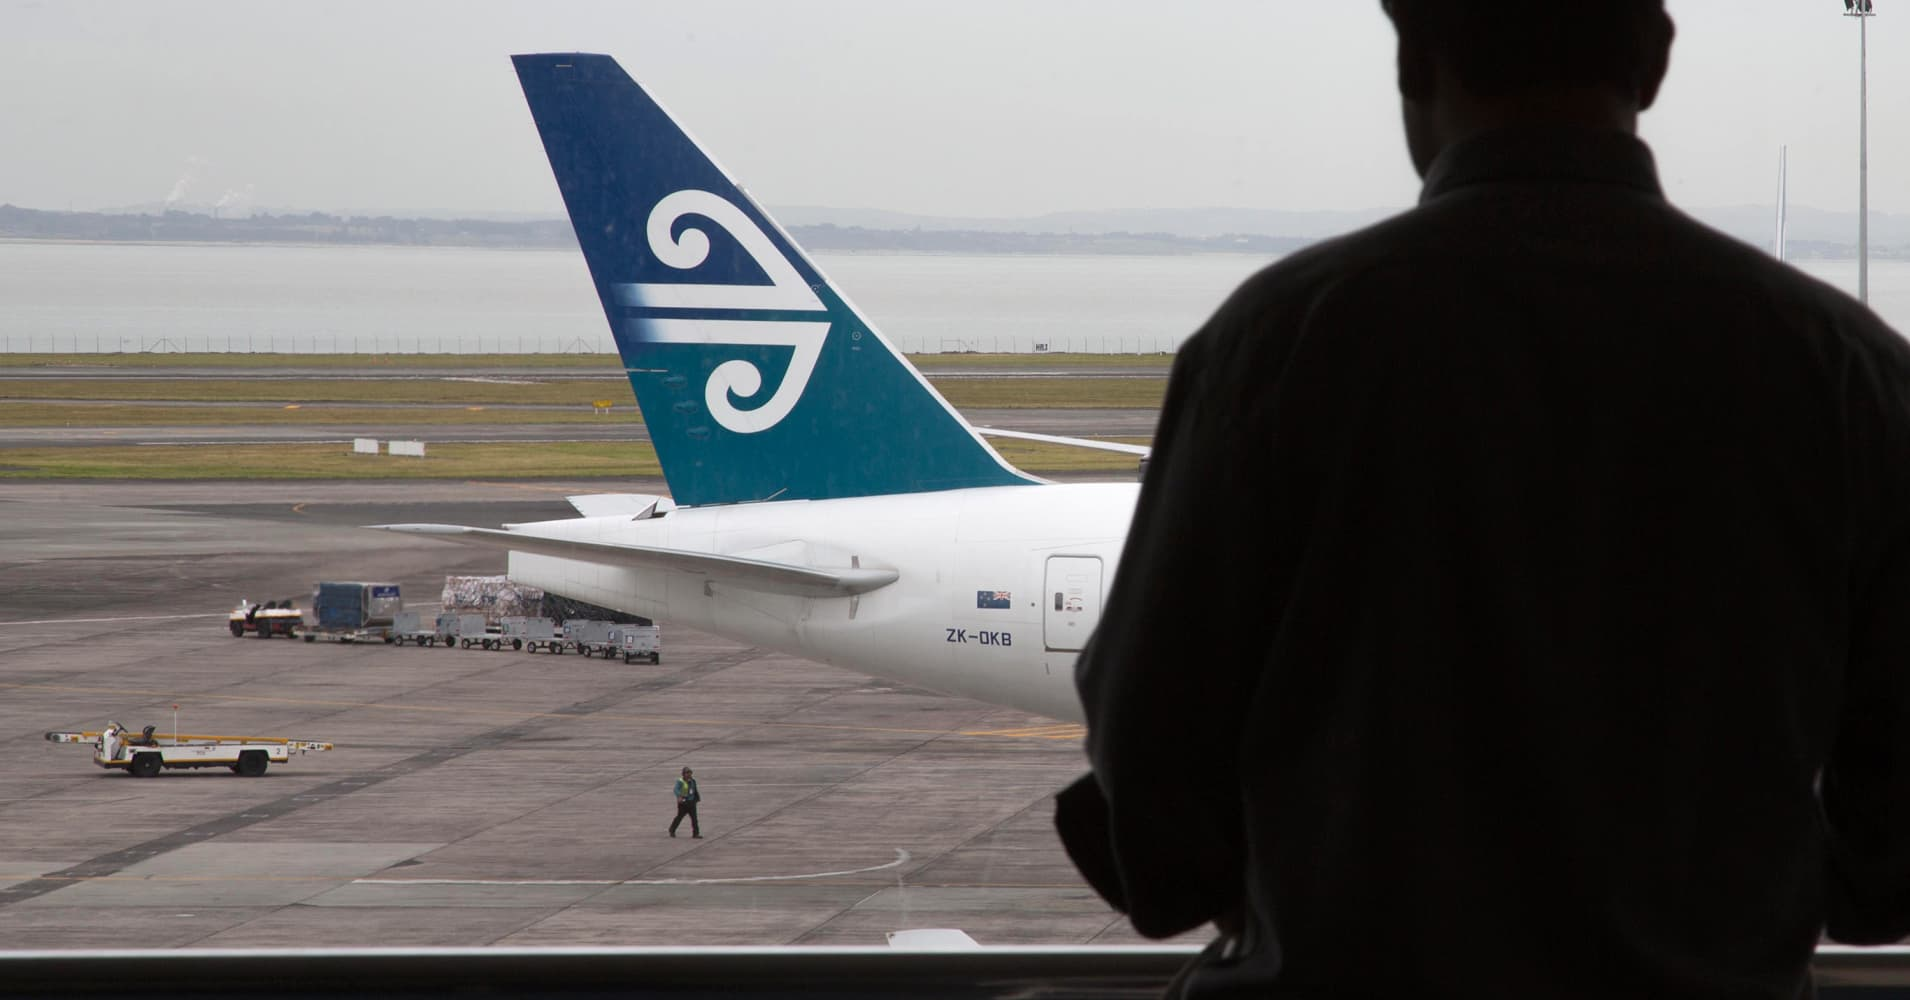 Fork over passwords or pay the price, New Zealand tells travelers